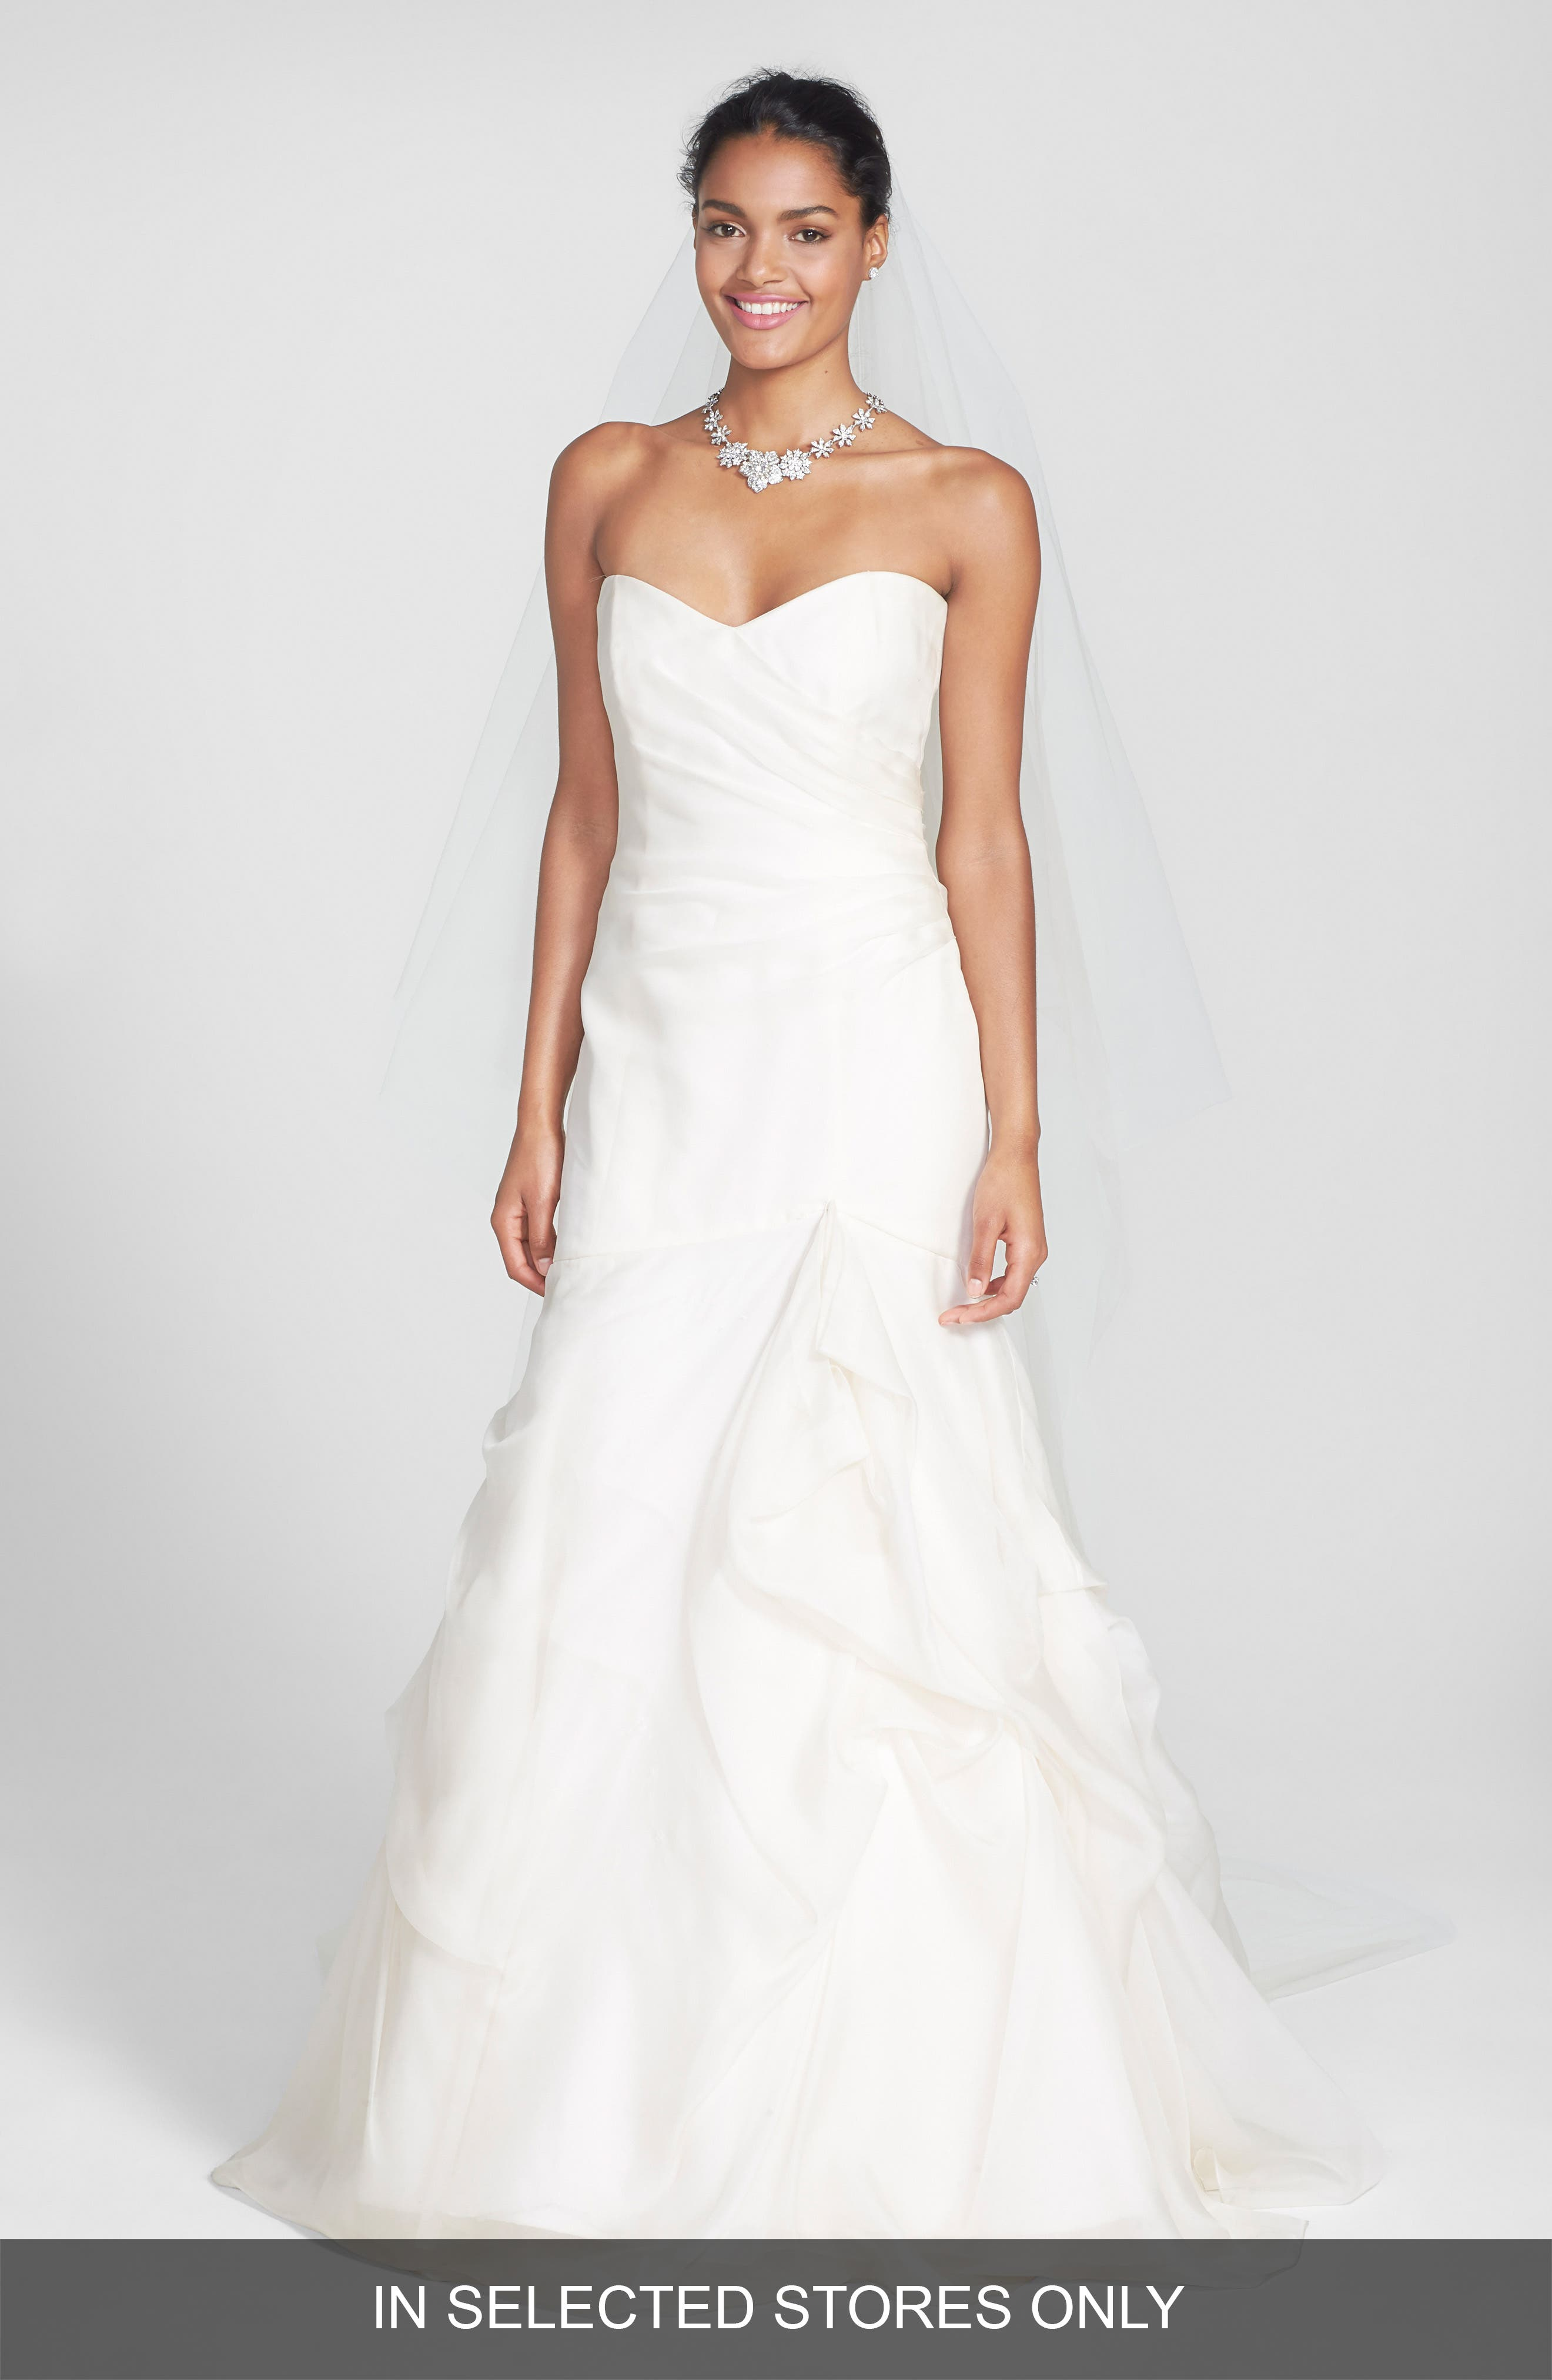 Alternate Image 1 Selected - BLISS Monique Lhuillier Strapless Silk Organza Mermaid Wedding Dress (In Stores Only)